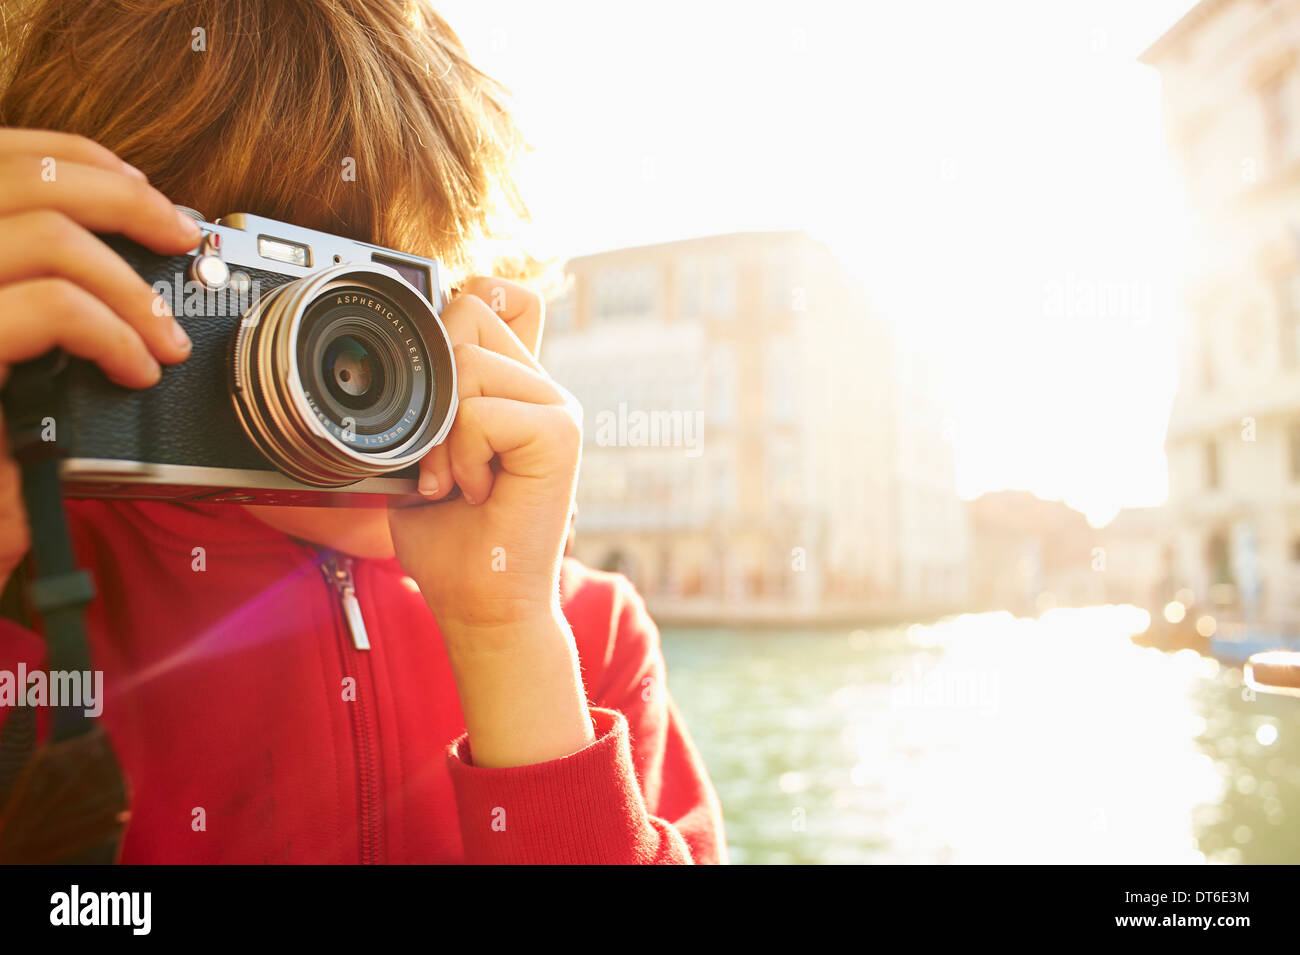 Young boy exploring with camera, Venice, Italy - Stock Image